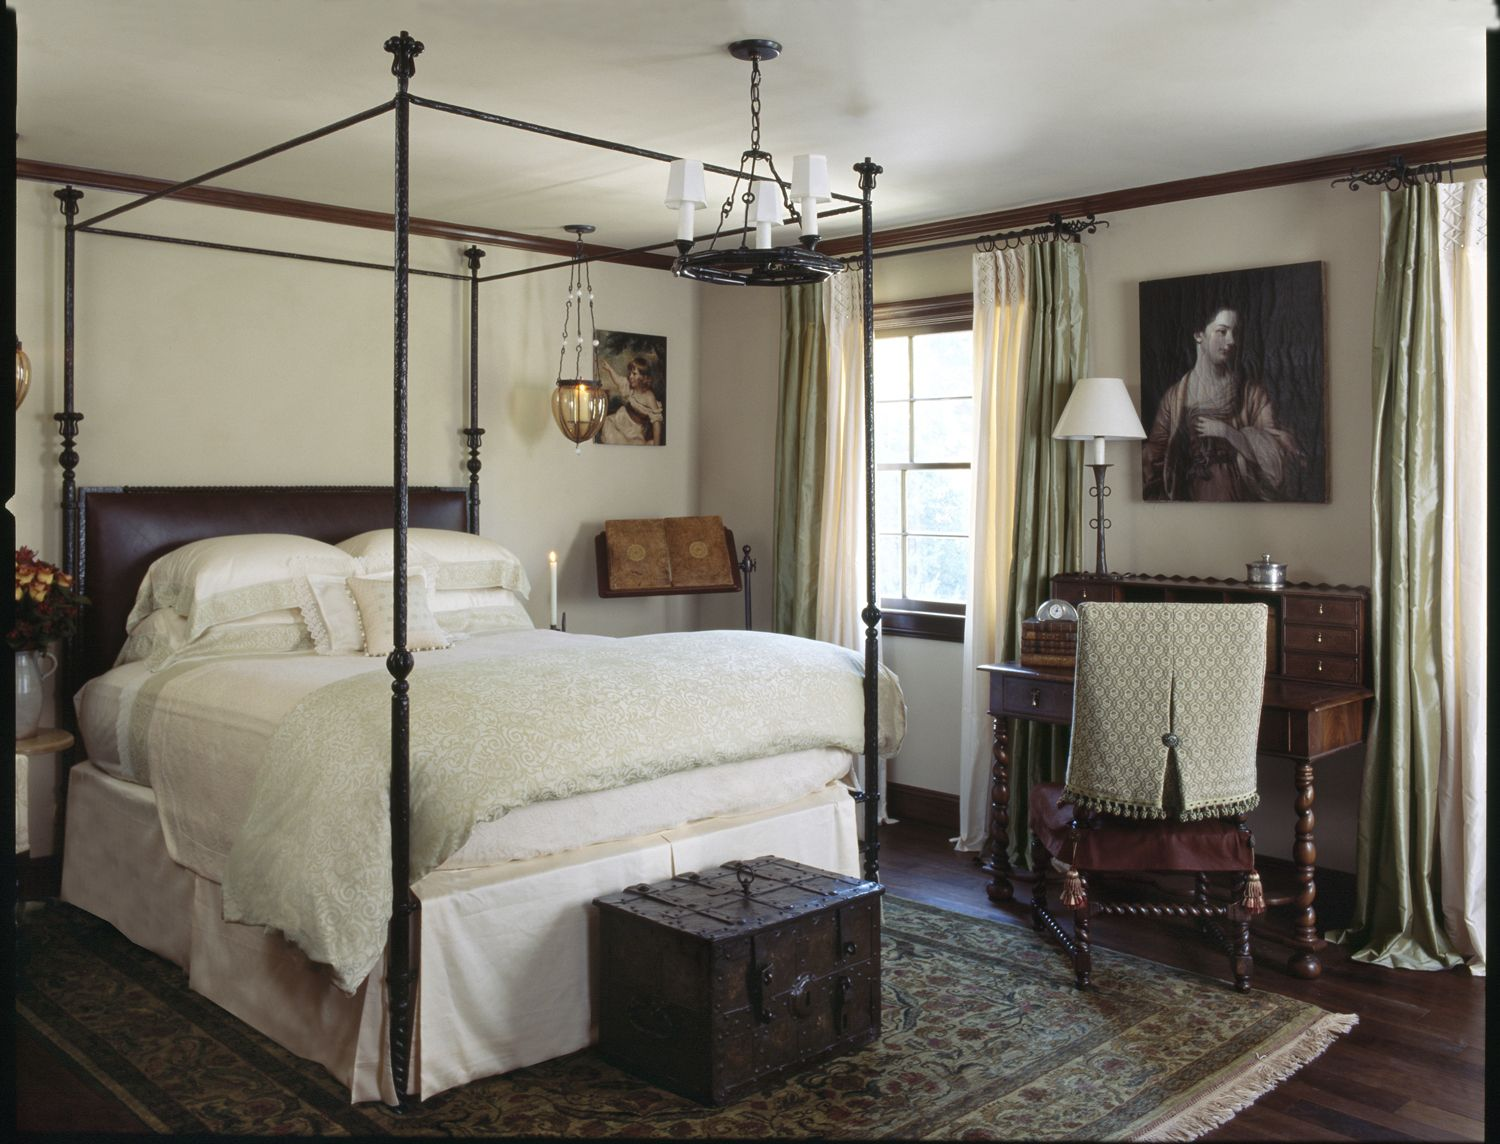 Modern Medieval Guest Room in 2019   Traditional bedroom